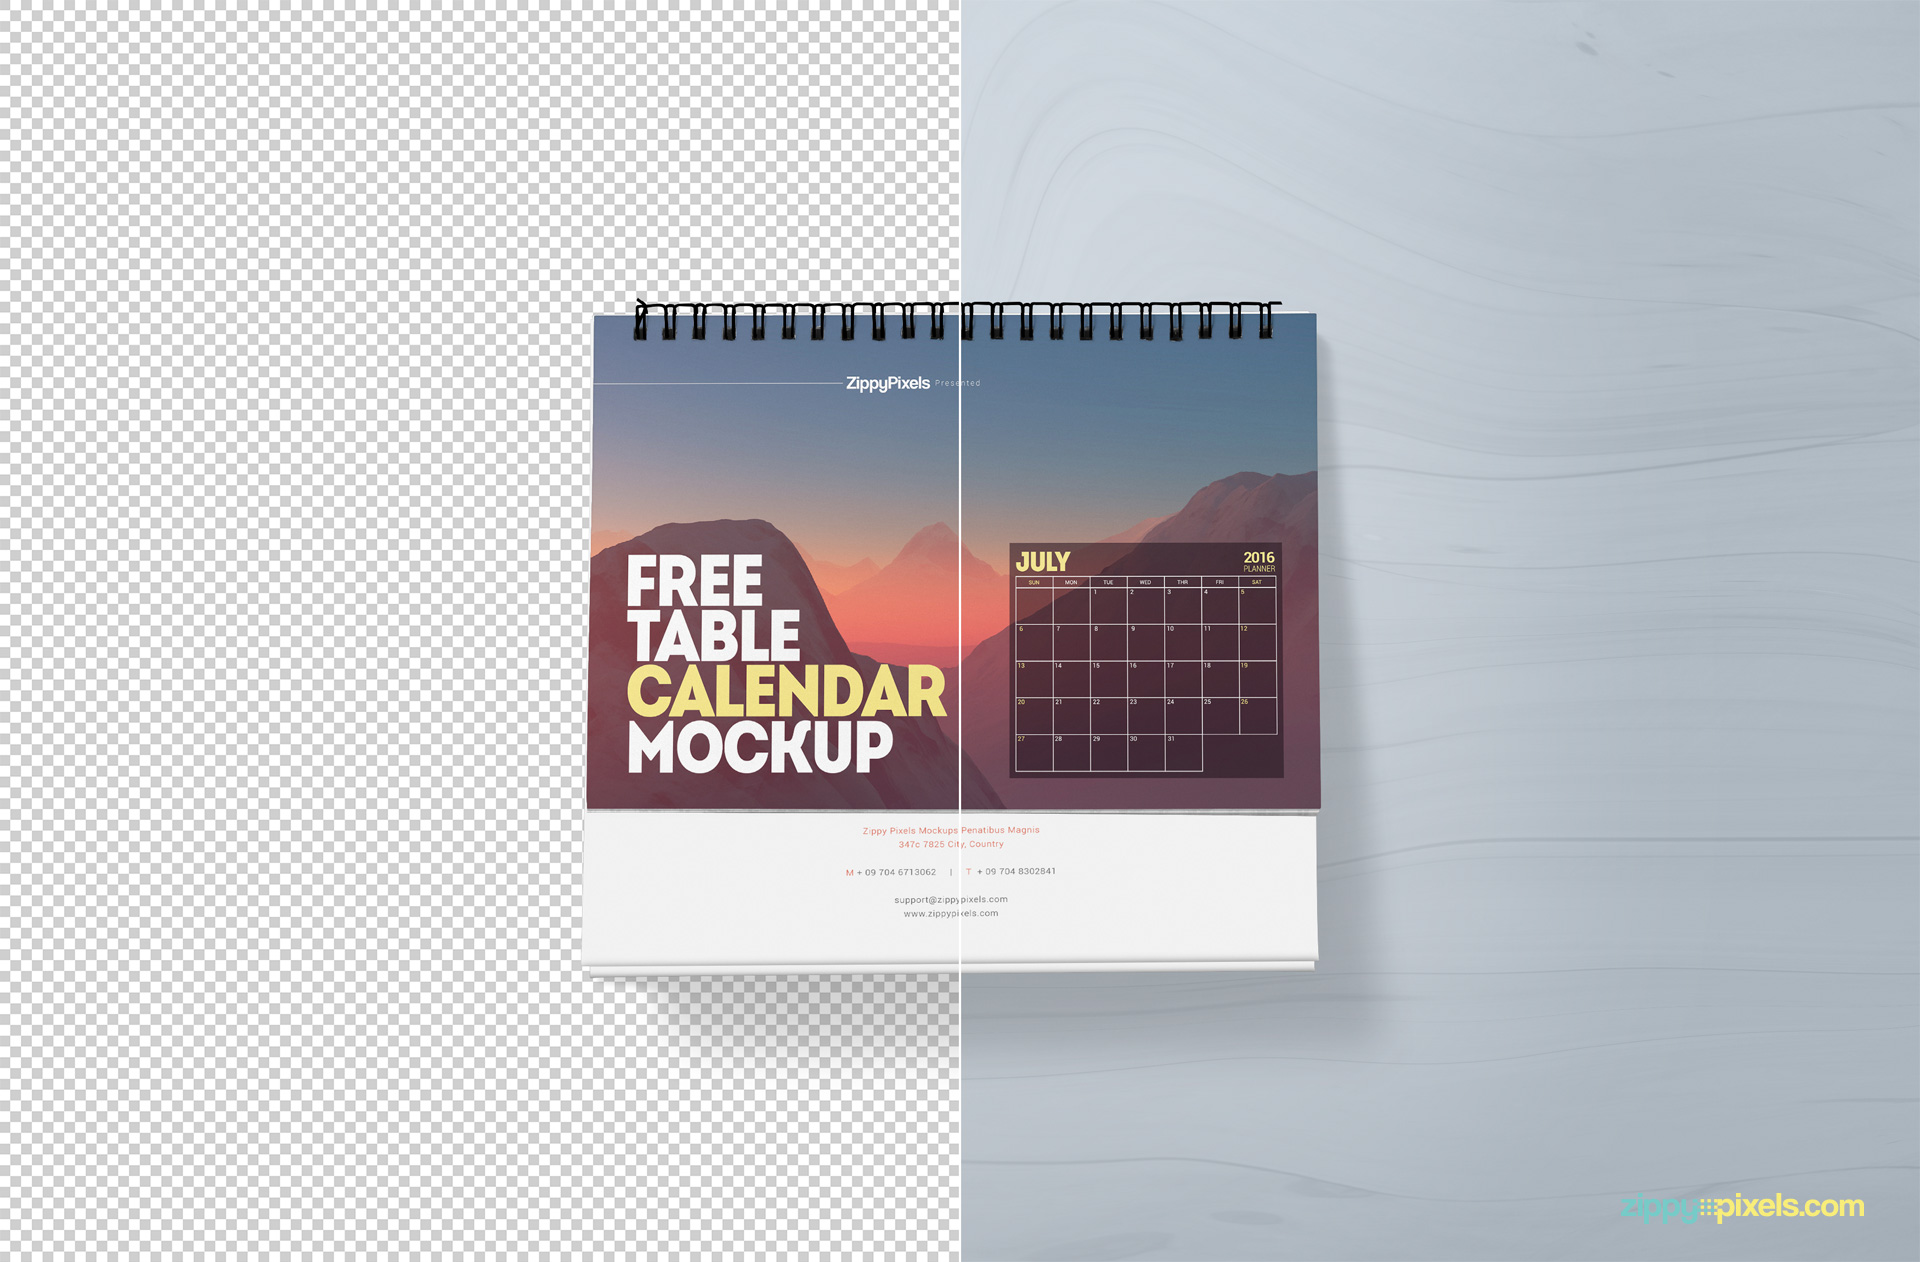 free desk calendar mock-up in psd file format